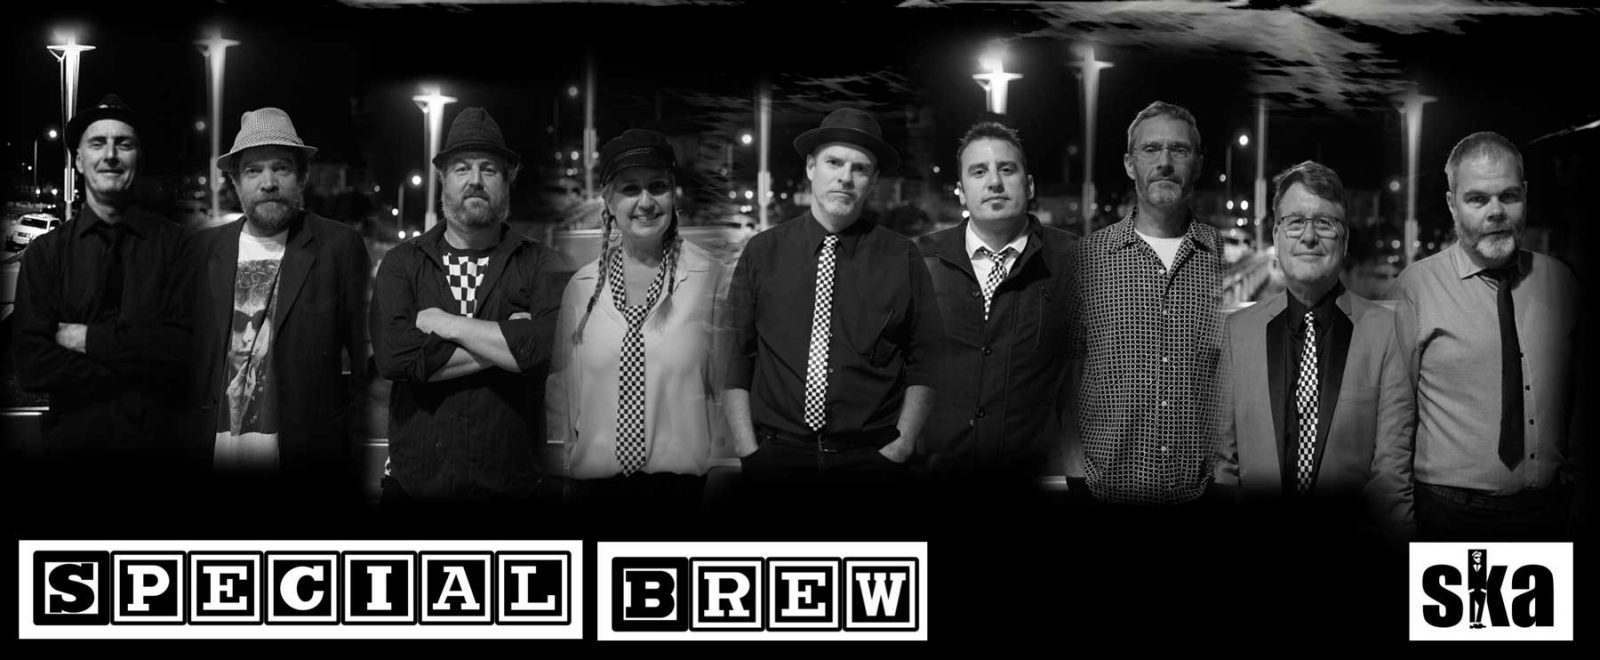 Special Brew Band Members